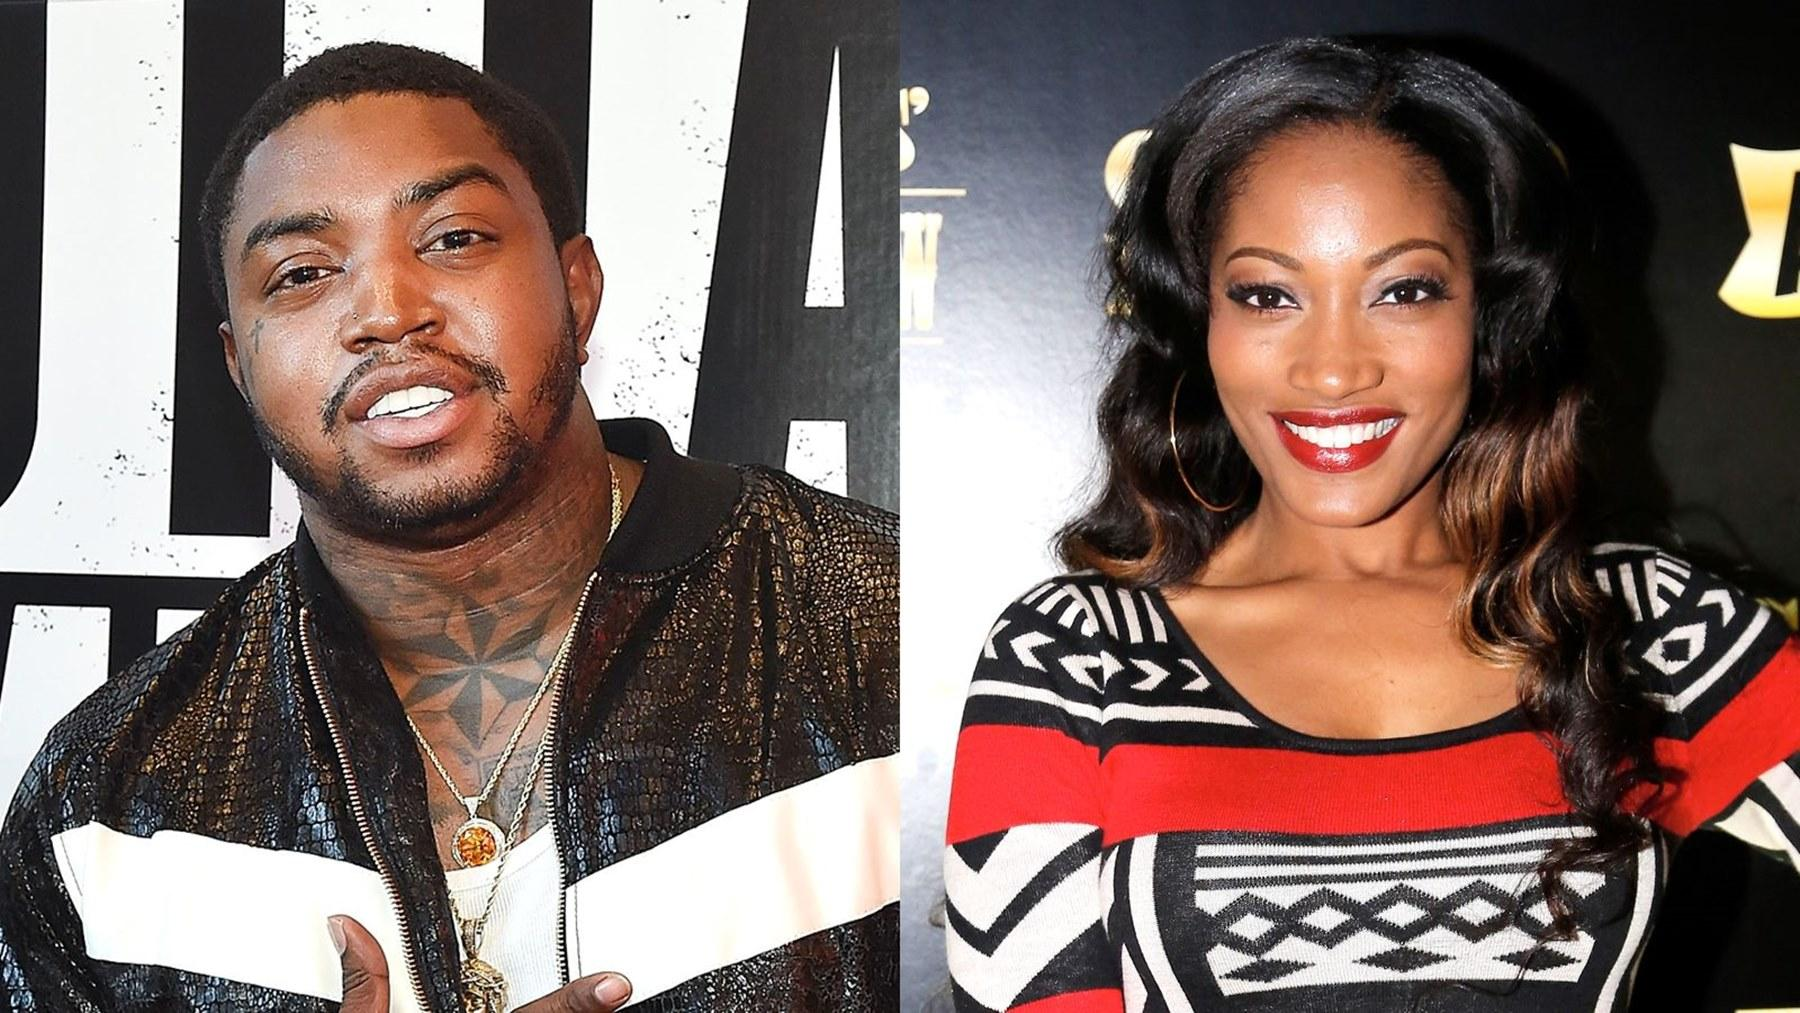 Lil Scrappy's Ex-Girlfriend Dropped A Few Bombshells In New Video About His Failed Romance With Baby Mama Erica Dixon -- 'Love & Hip Hop: Atlanta' Fans Are Baffled